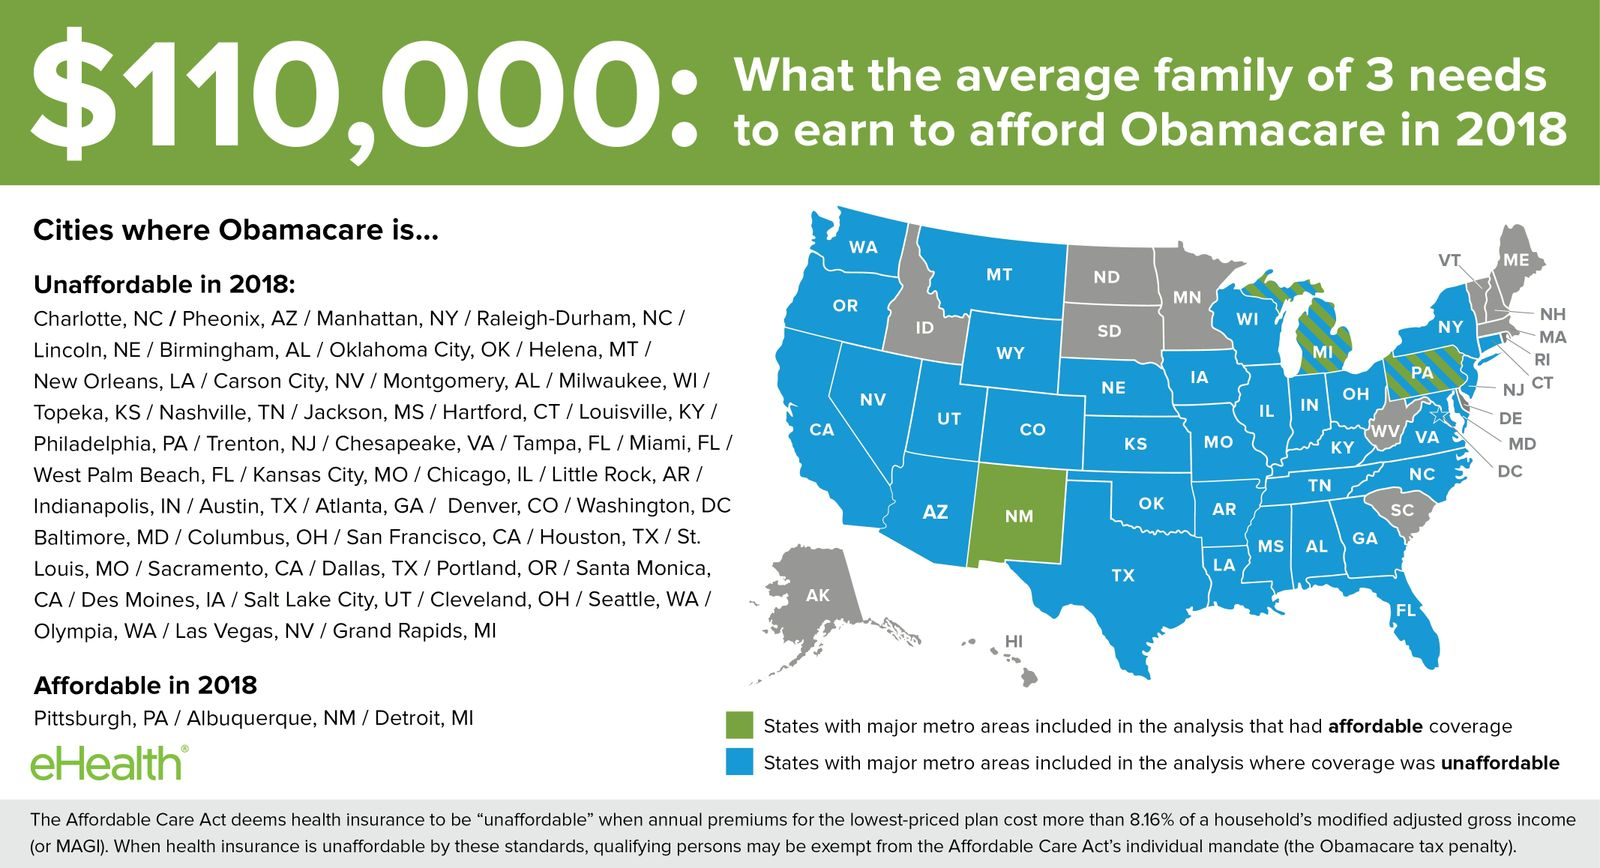 Obamacare Affordability Map 2018